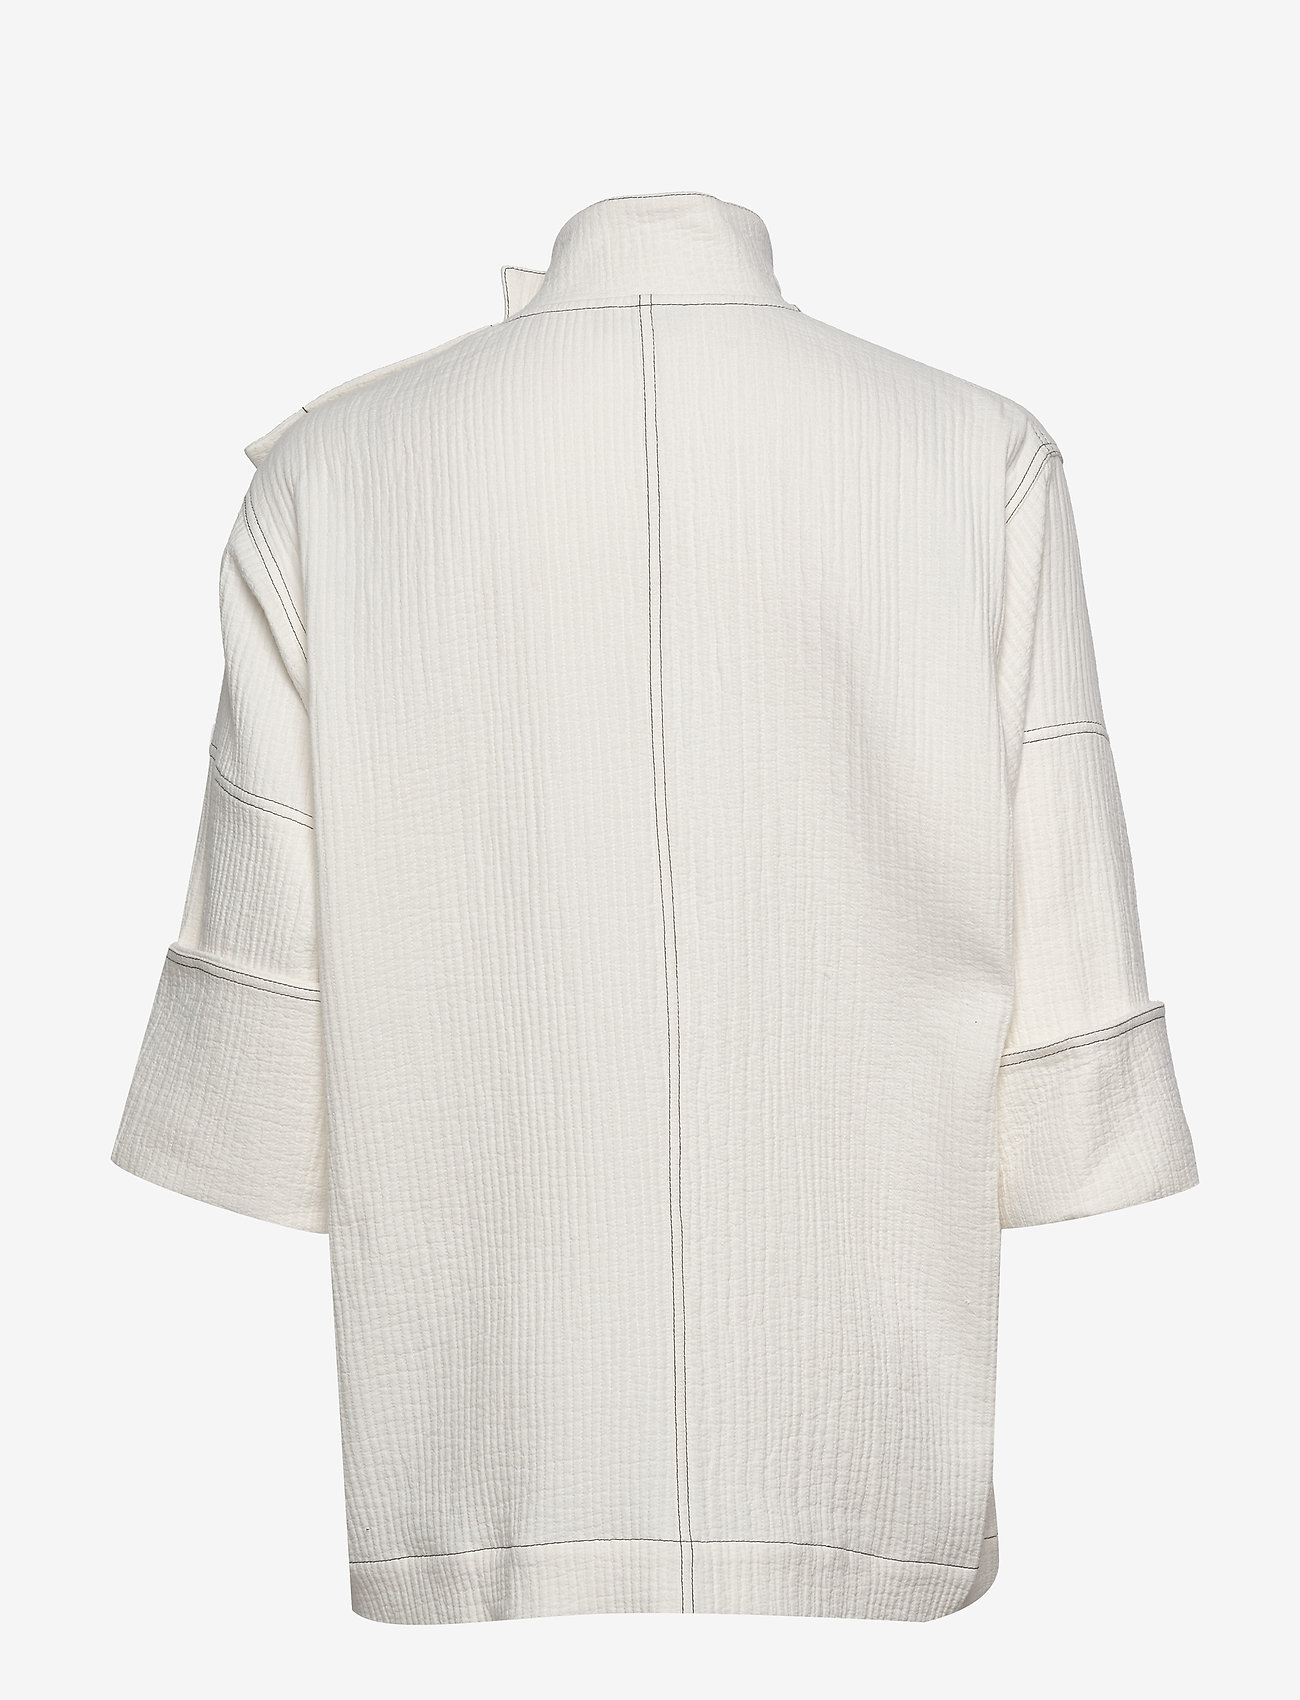 Caladenia (Soft White) (1959.30 kr) - By Malene Birger